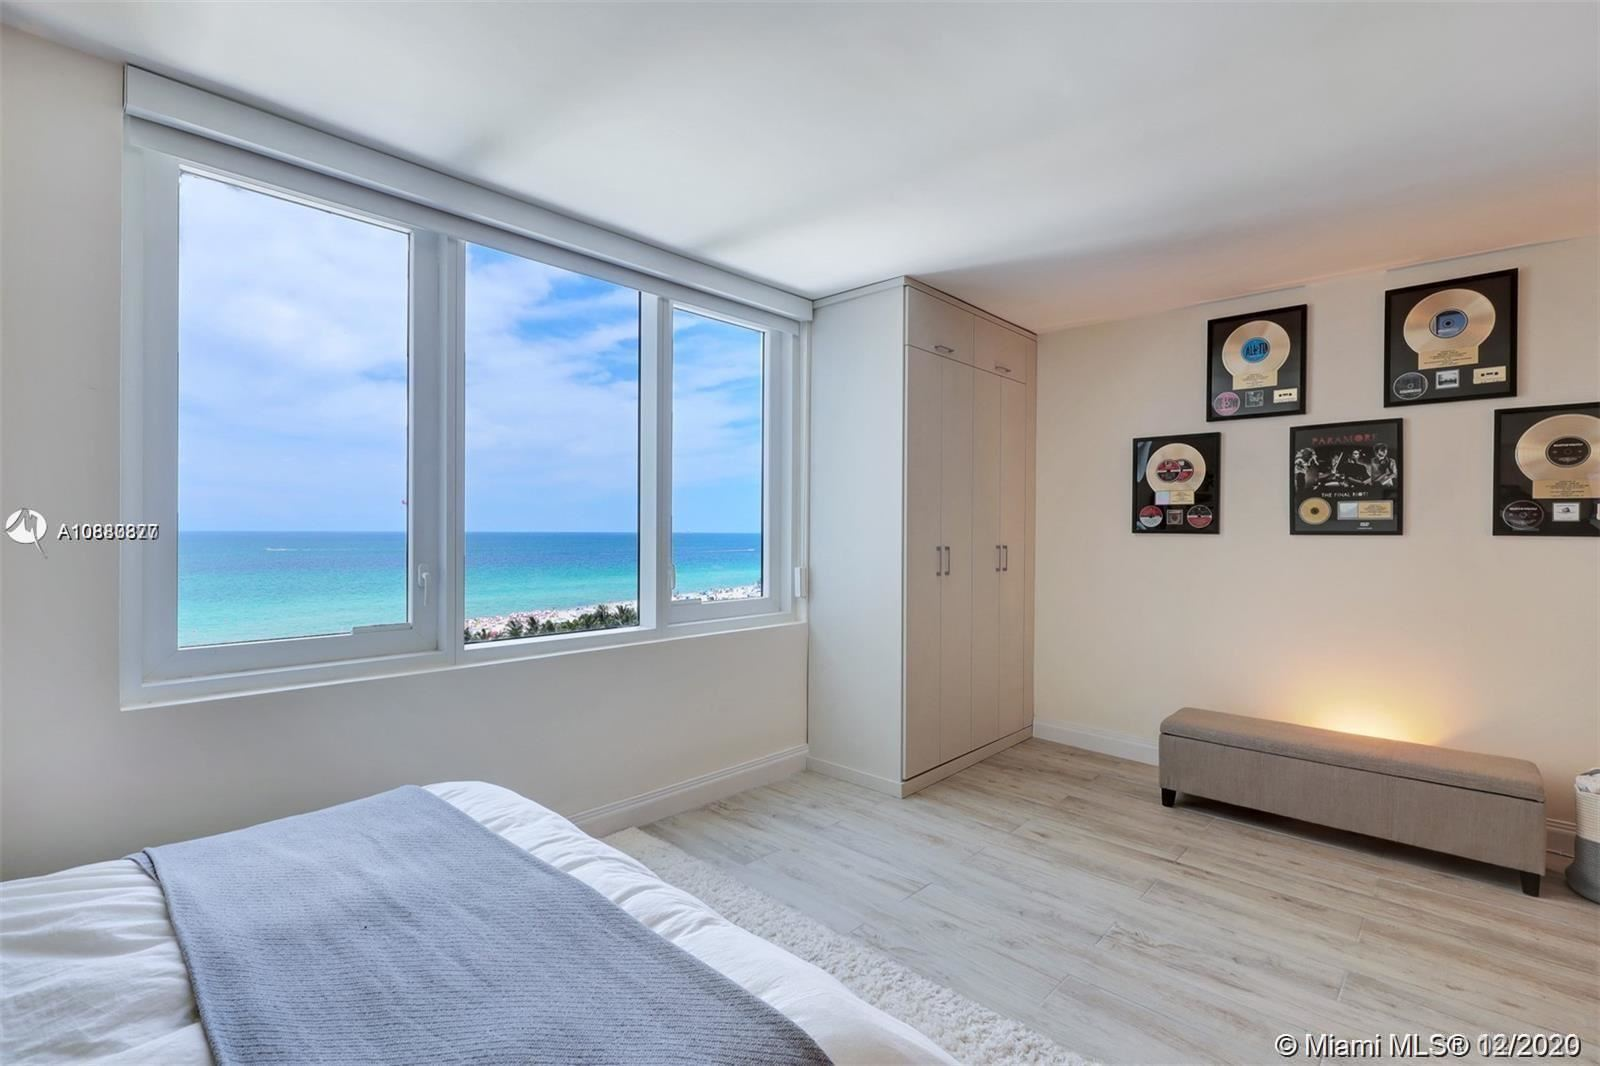 2301 Collins Ave #1043, Miami Beach, FL 33139 - #: A10880377